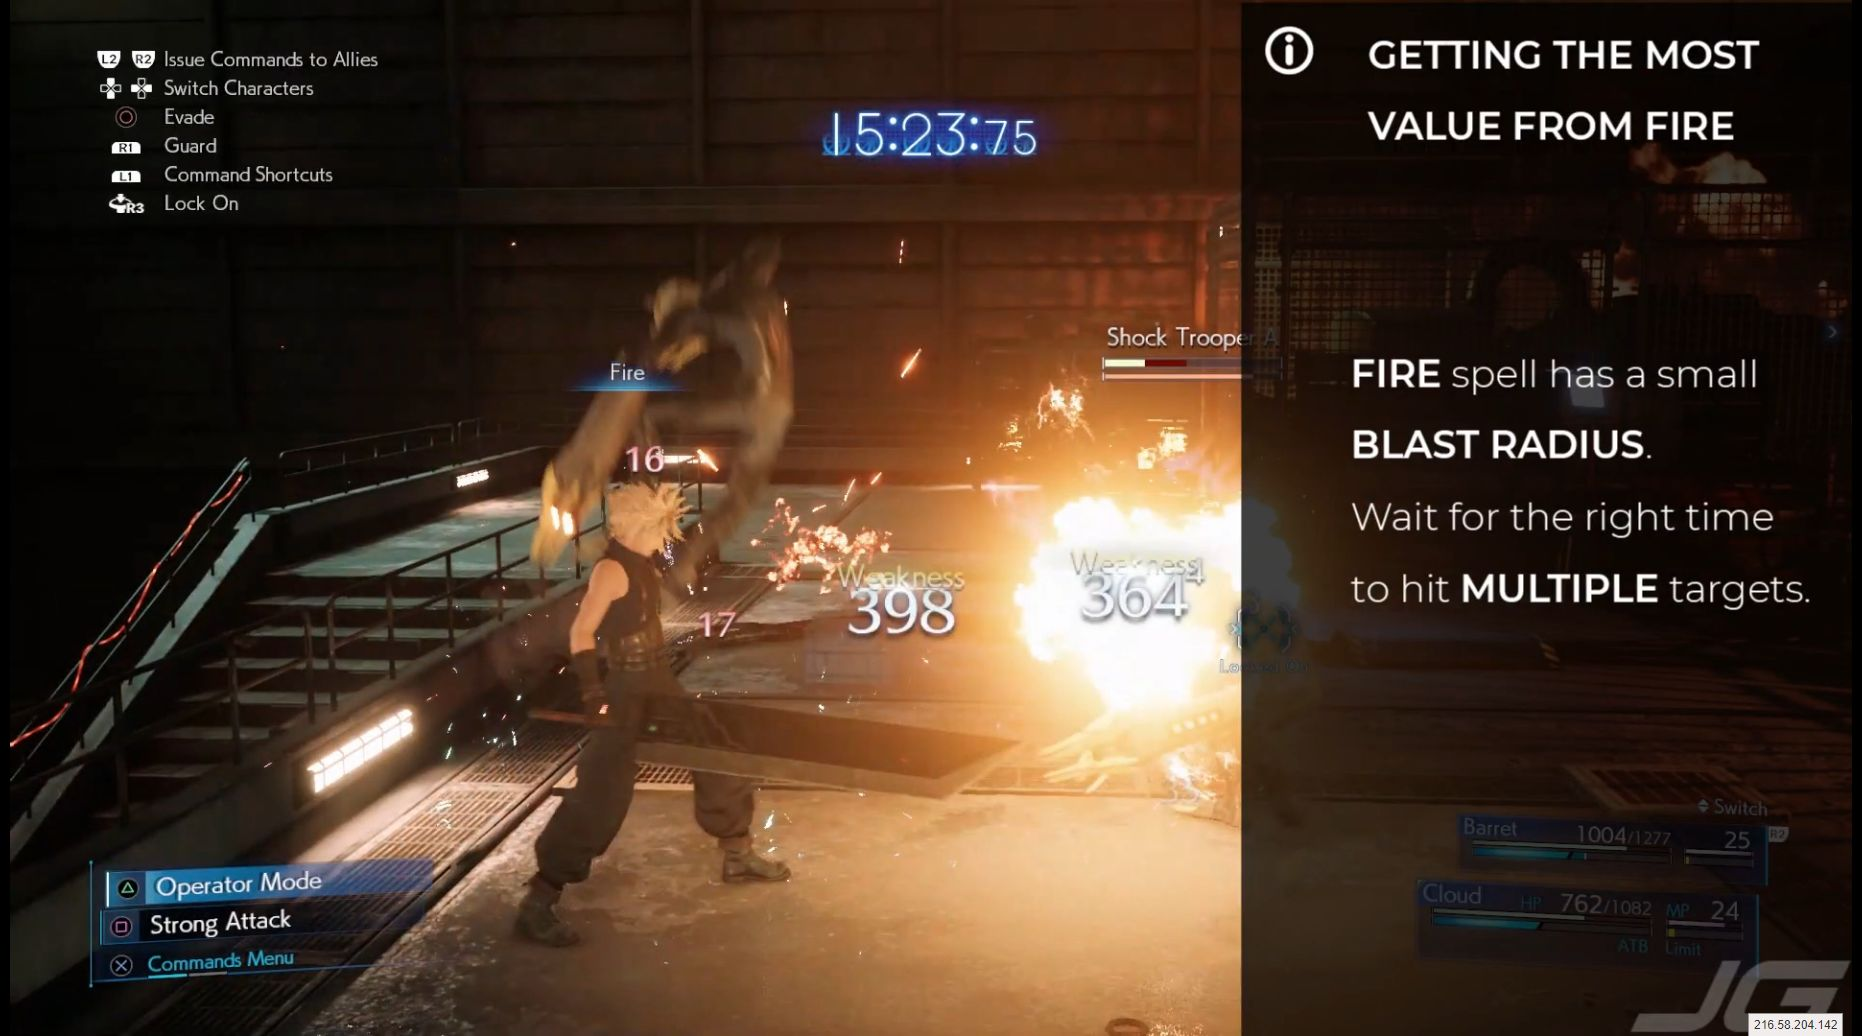 FIRE has a blast radius. You can hit multiple enemies if you wait for the right moment